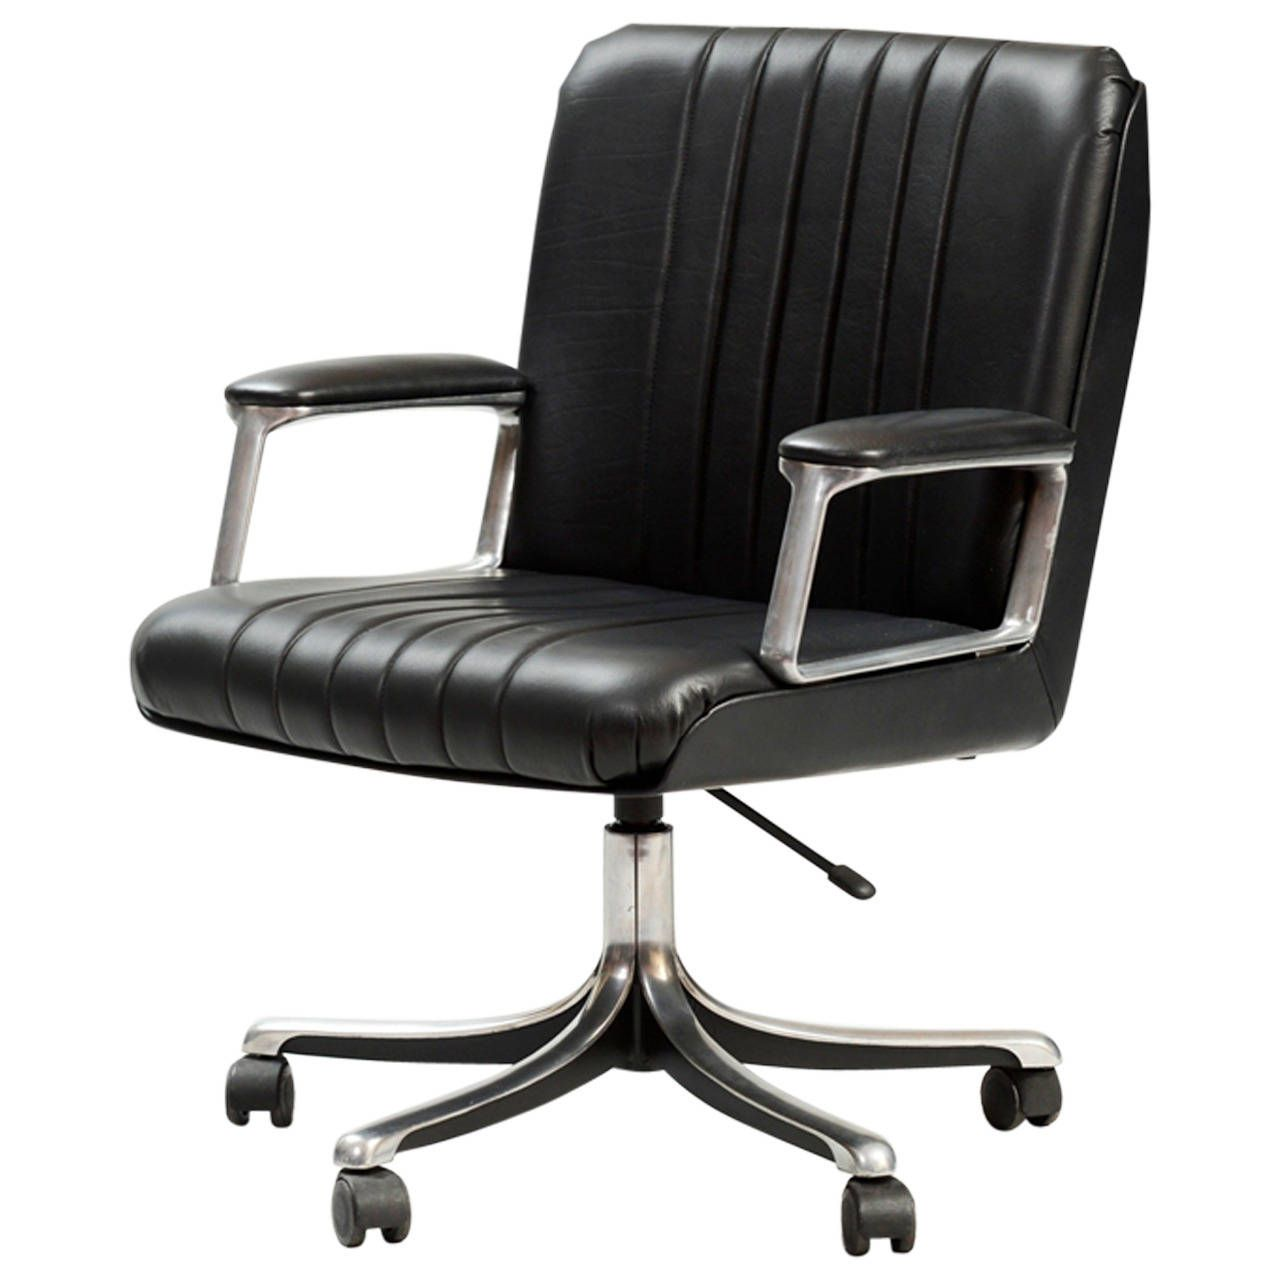 Osvaldo Borsani P126 Desk Chair | From a unique collection of antique and modern office chairs and desk chairs at https://www.1stdibs.com/furniture/seating/office-chairs-desk-chairs/